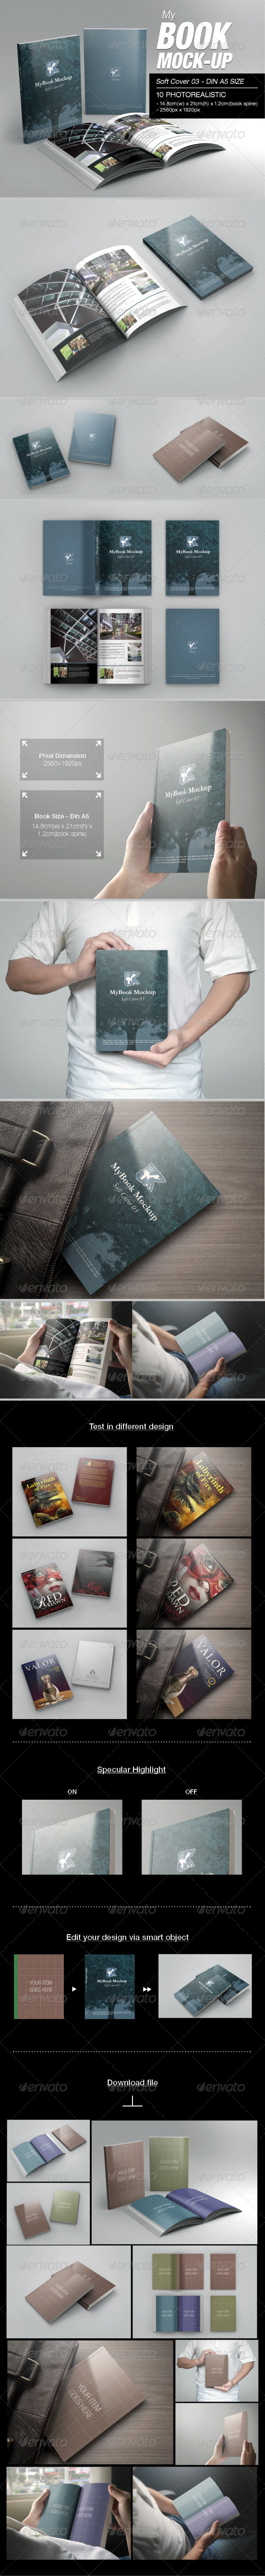 GraphicRiver MyBook Mock-up Soft Cover 03 7337539